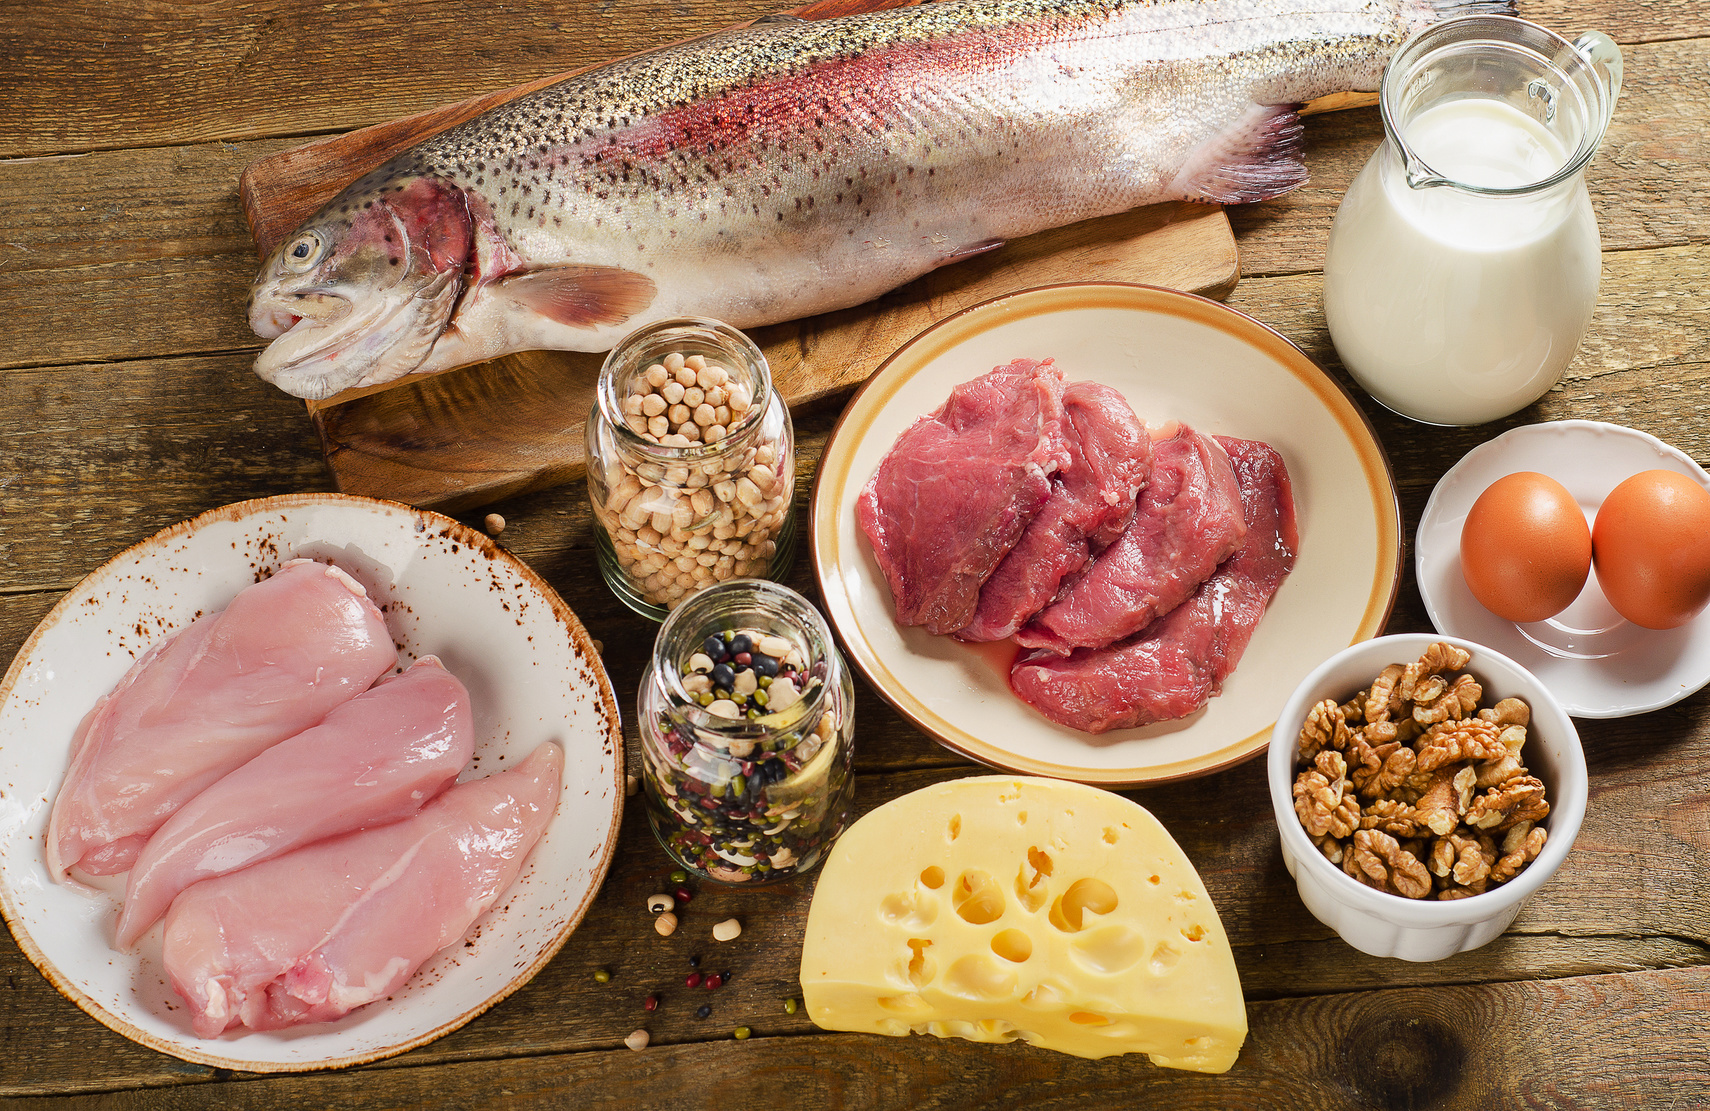 Food high in protein on a wooden background.